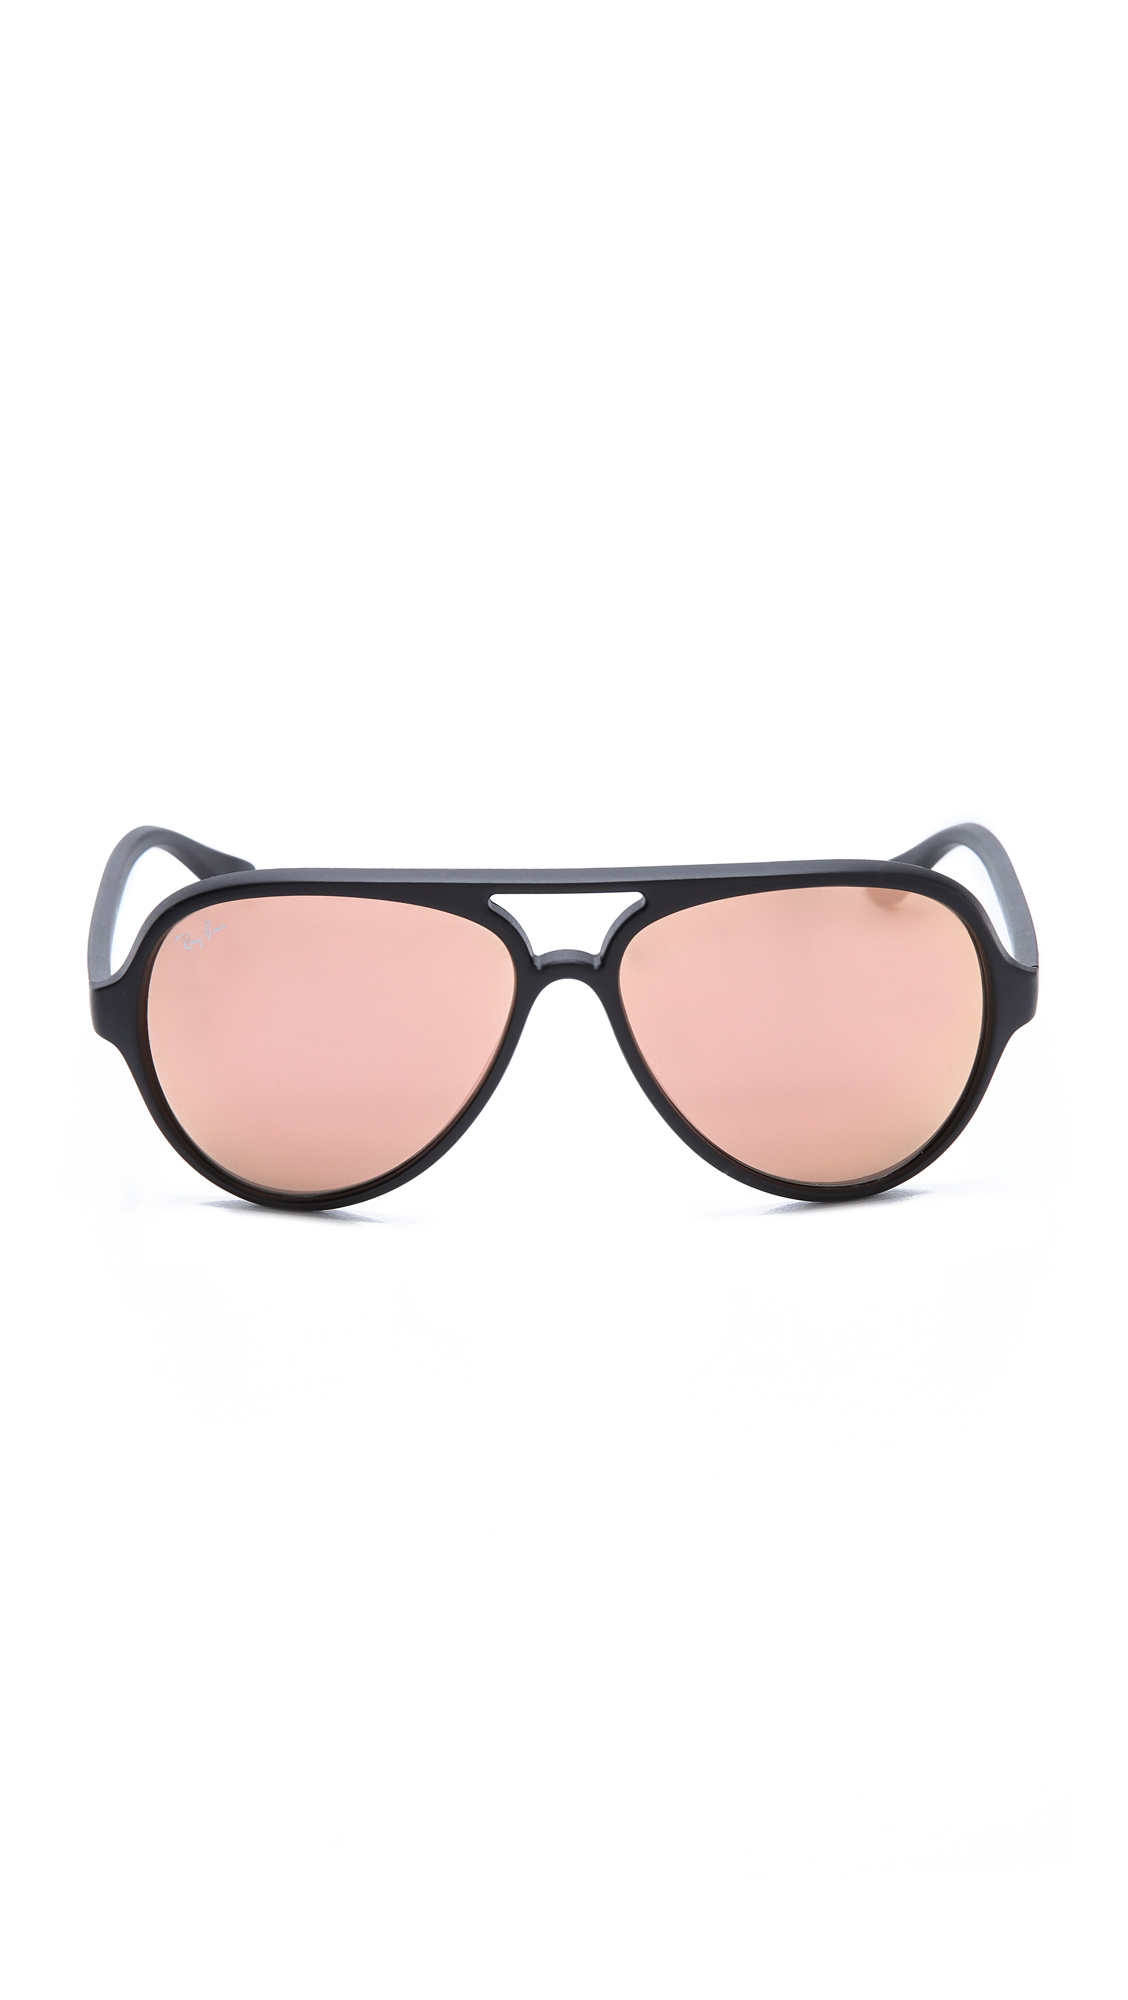 ray ban cats 5000 mirror - Holly\'s Restaurant and Pub